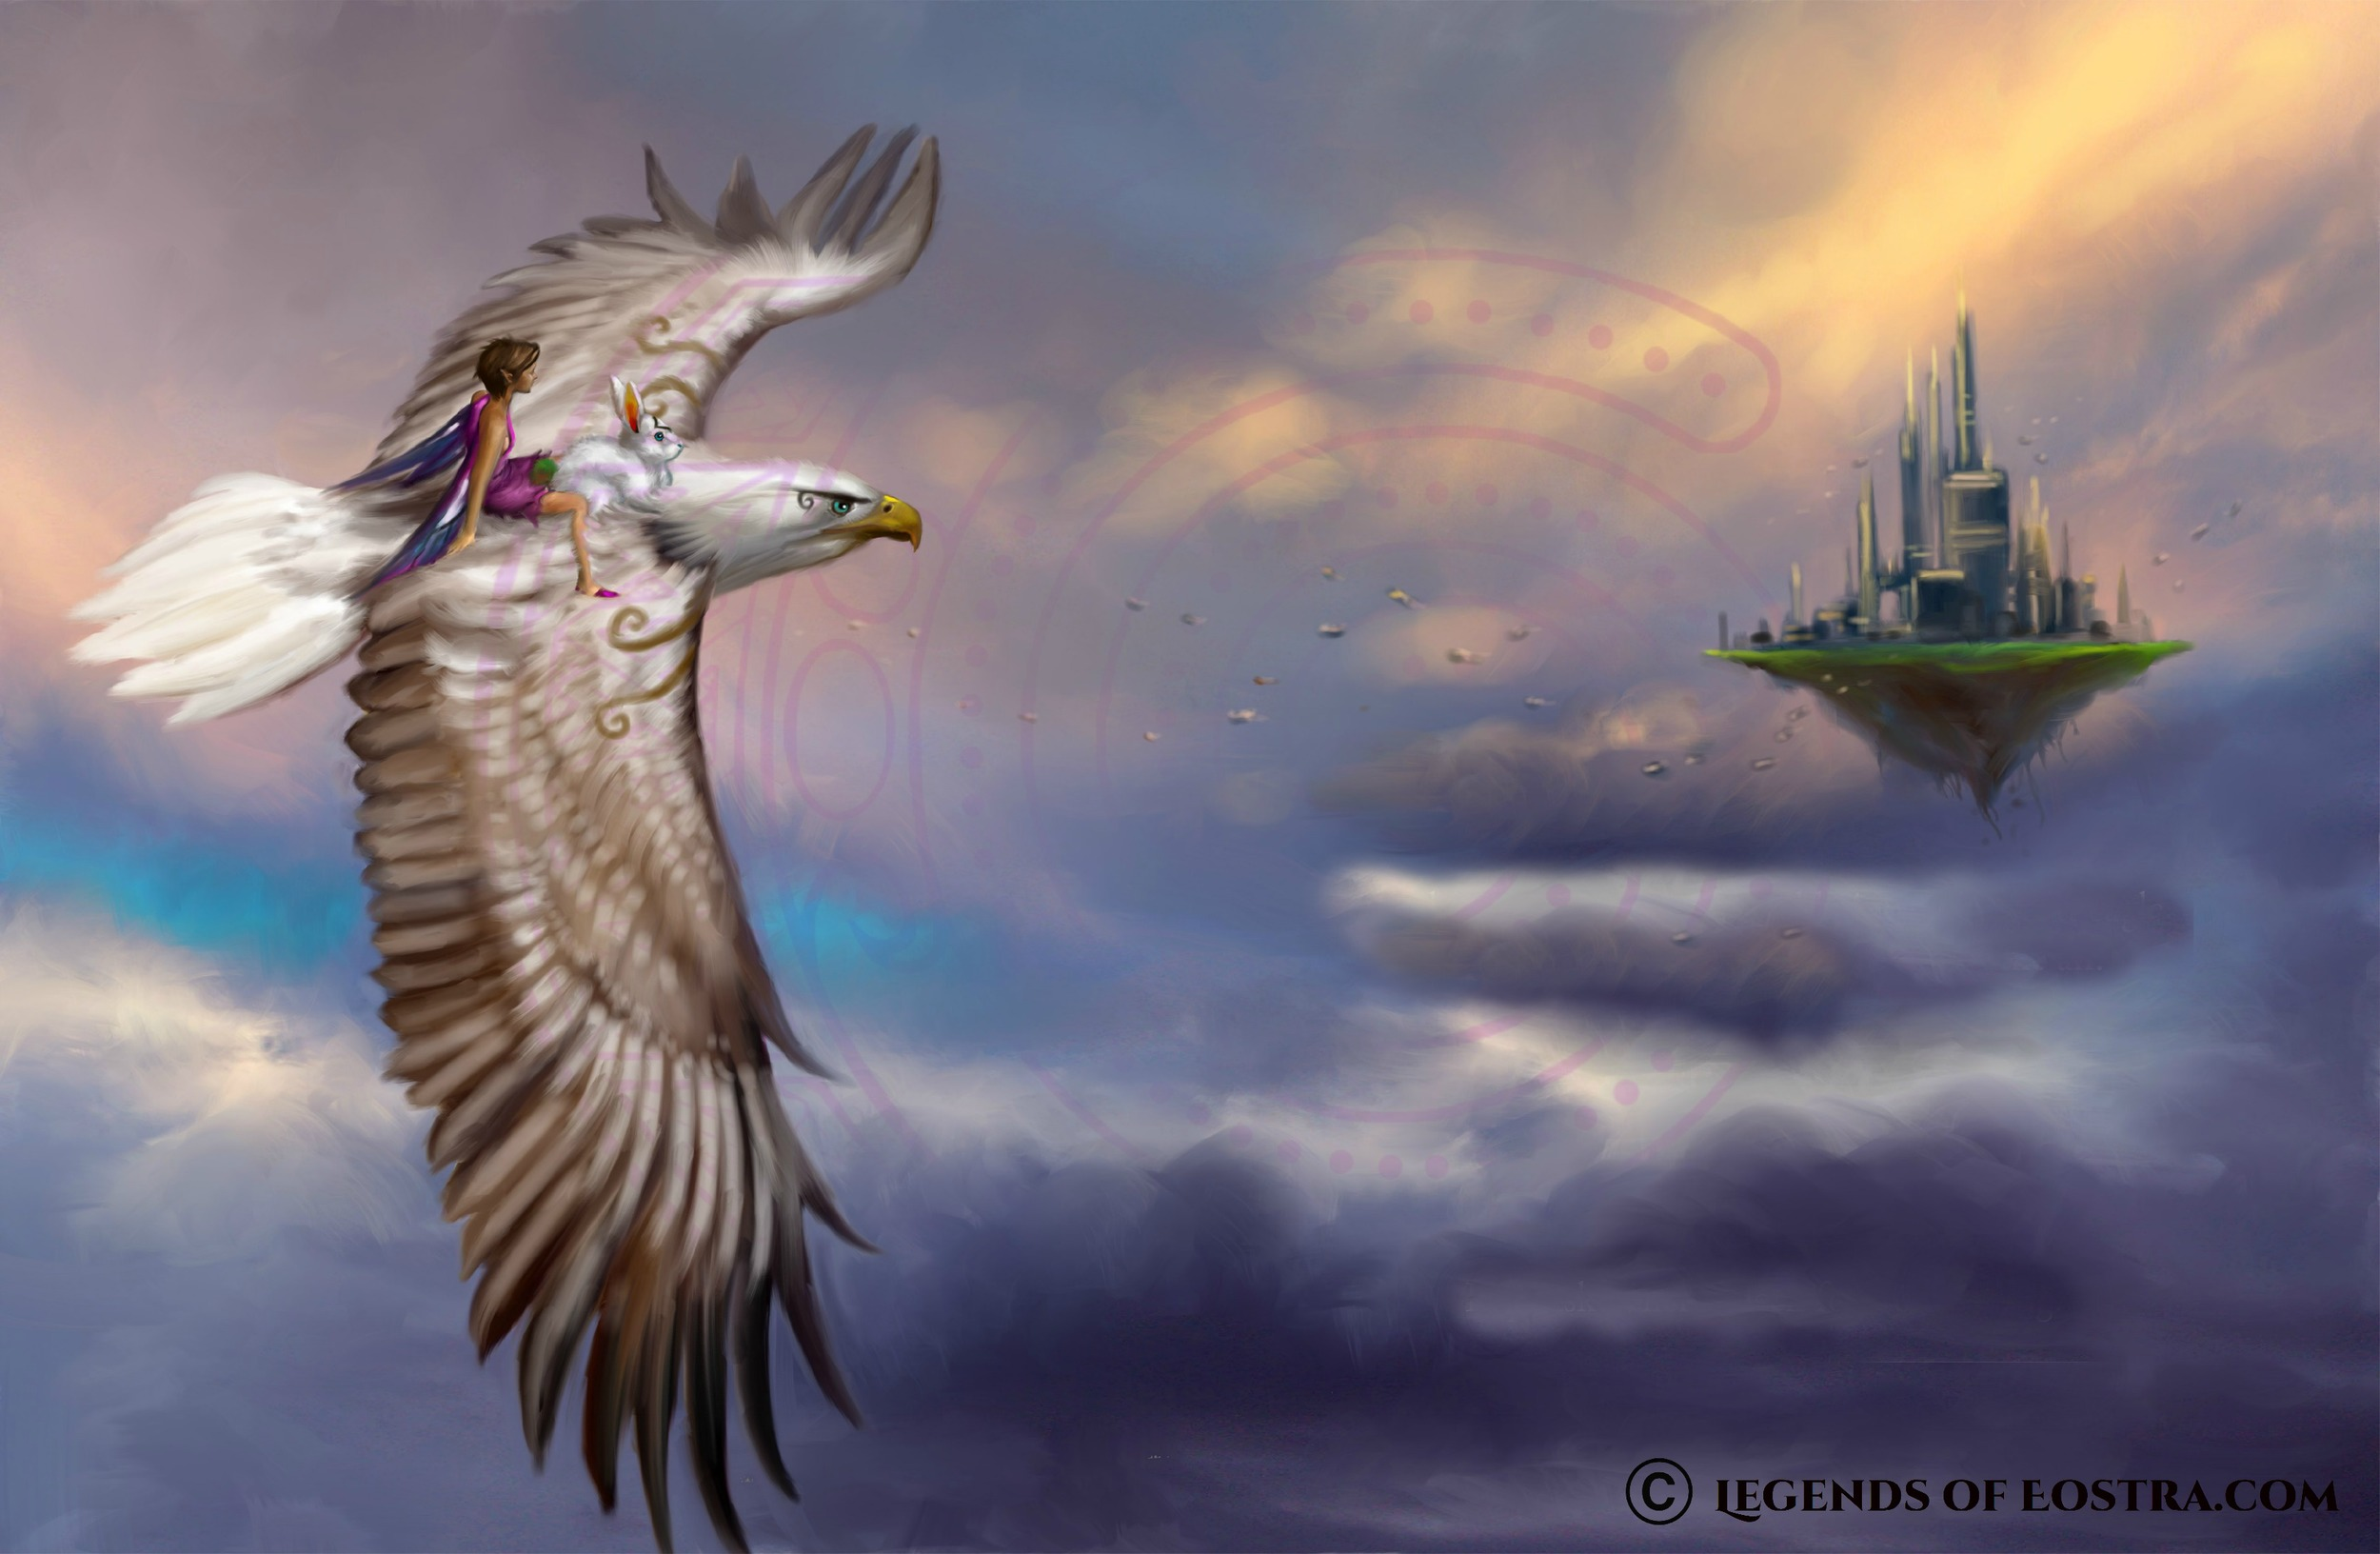 Flying to Thilameth